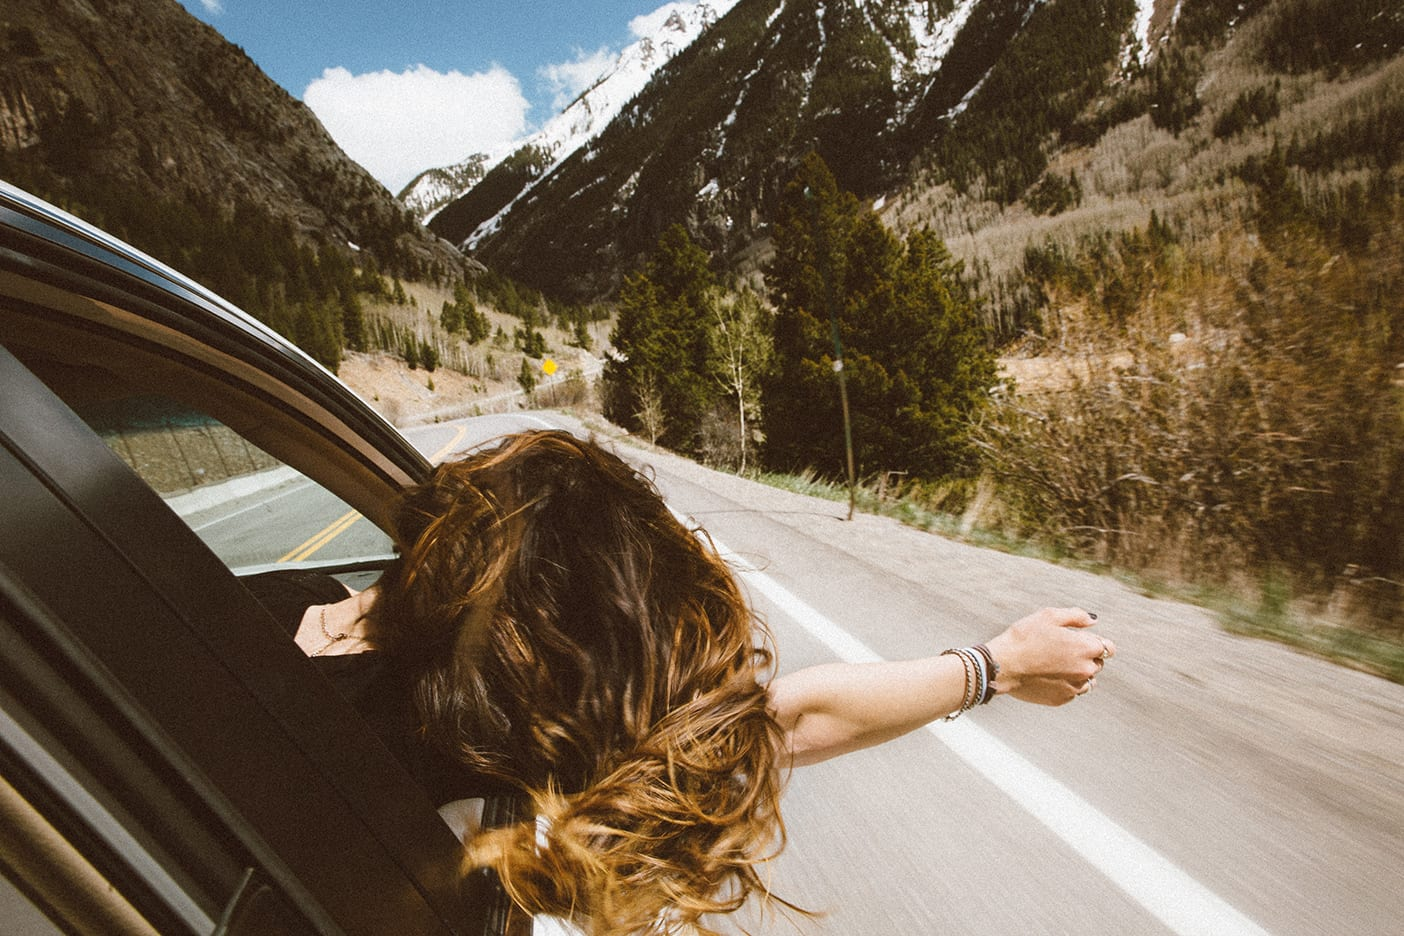 The Road to Wanderlust: Chasing Community to See the World